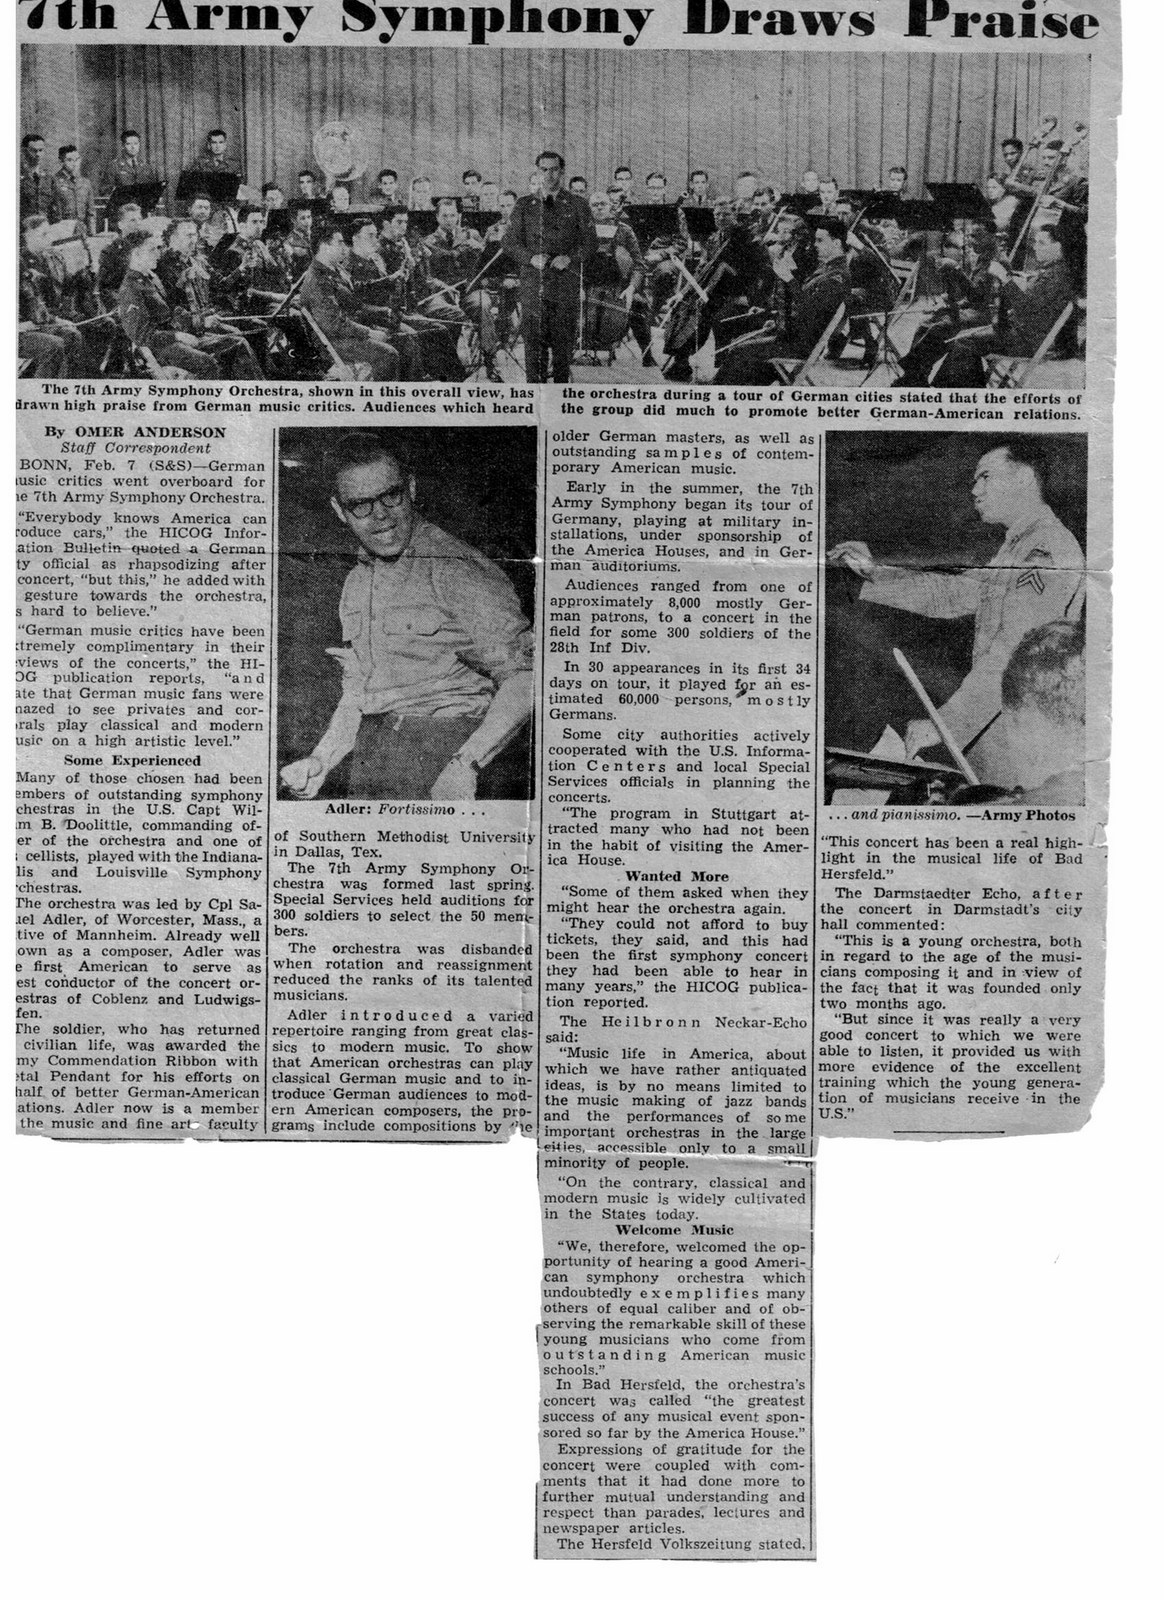 1953 Newspaper Article